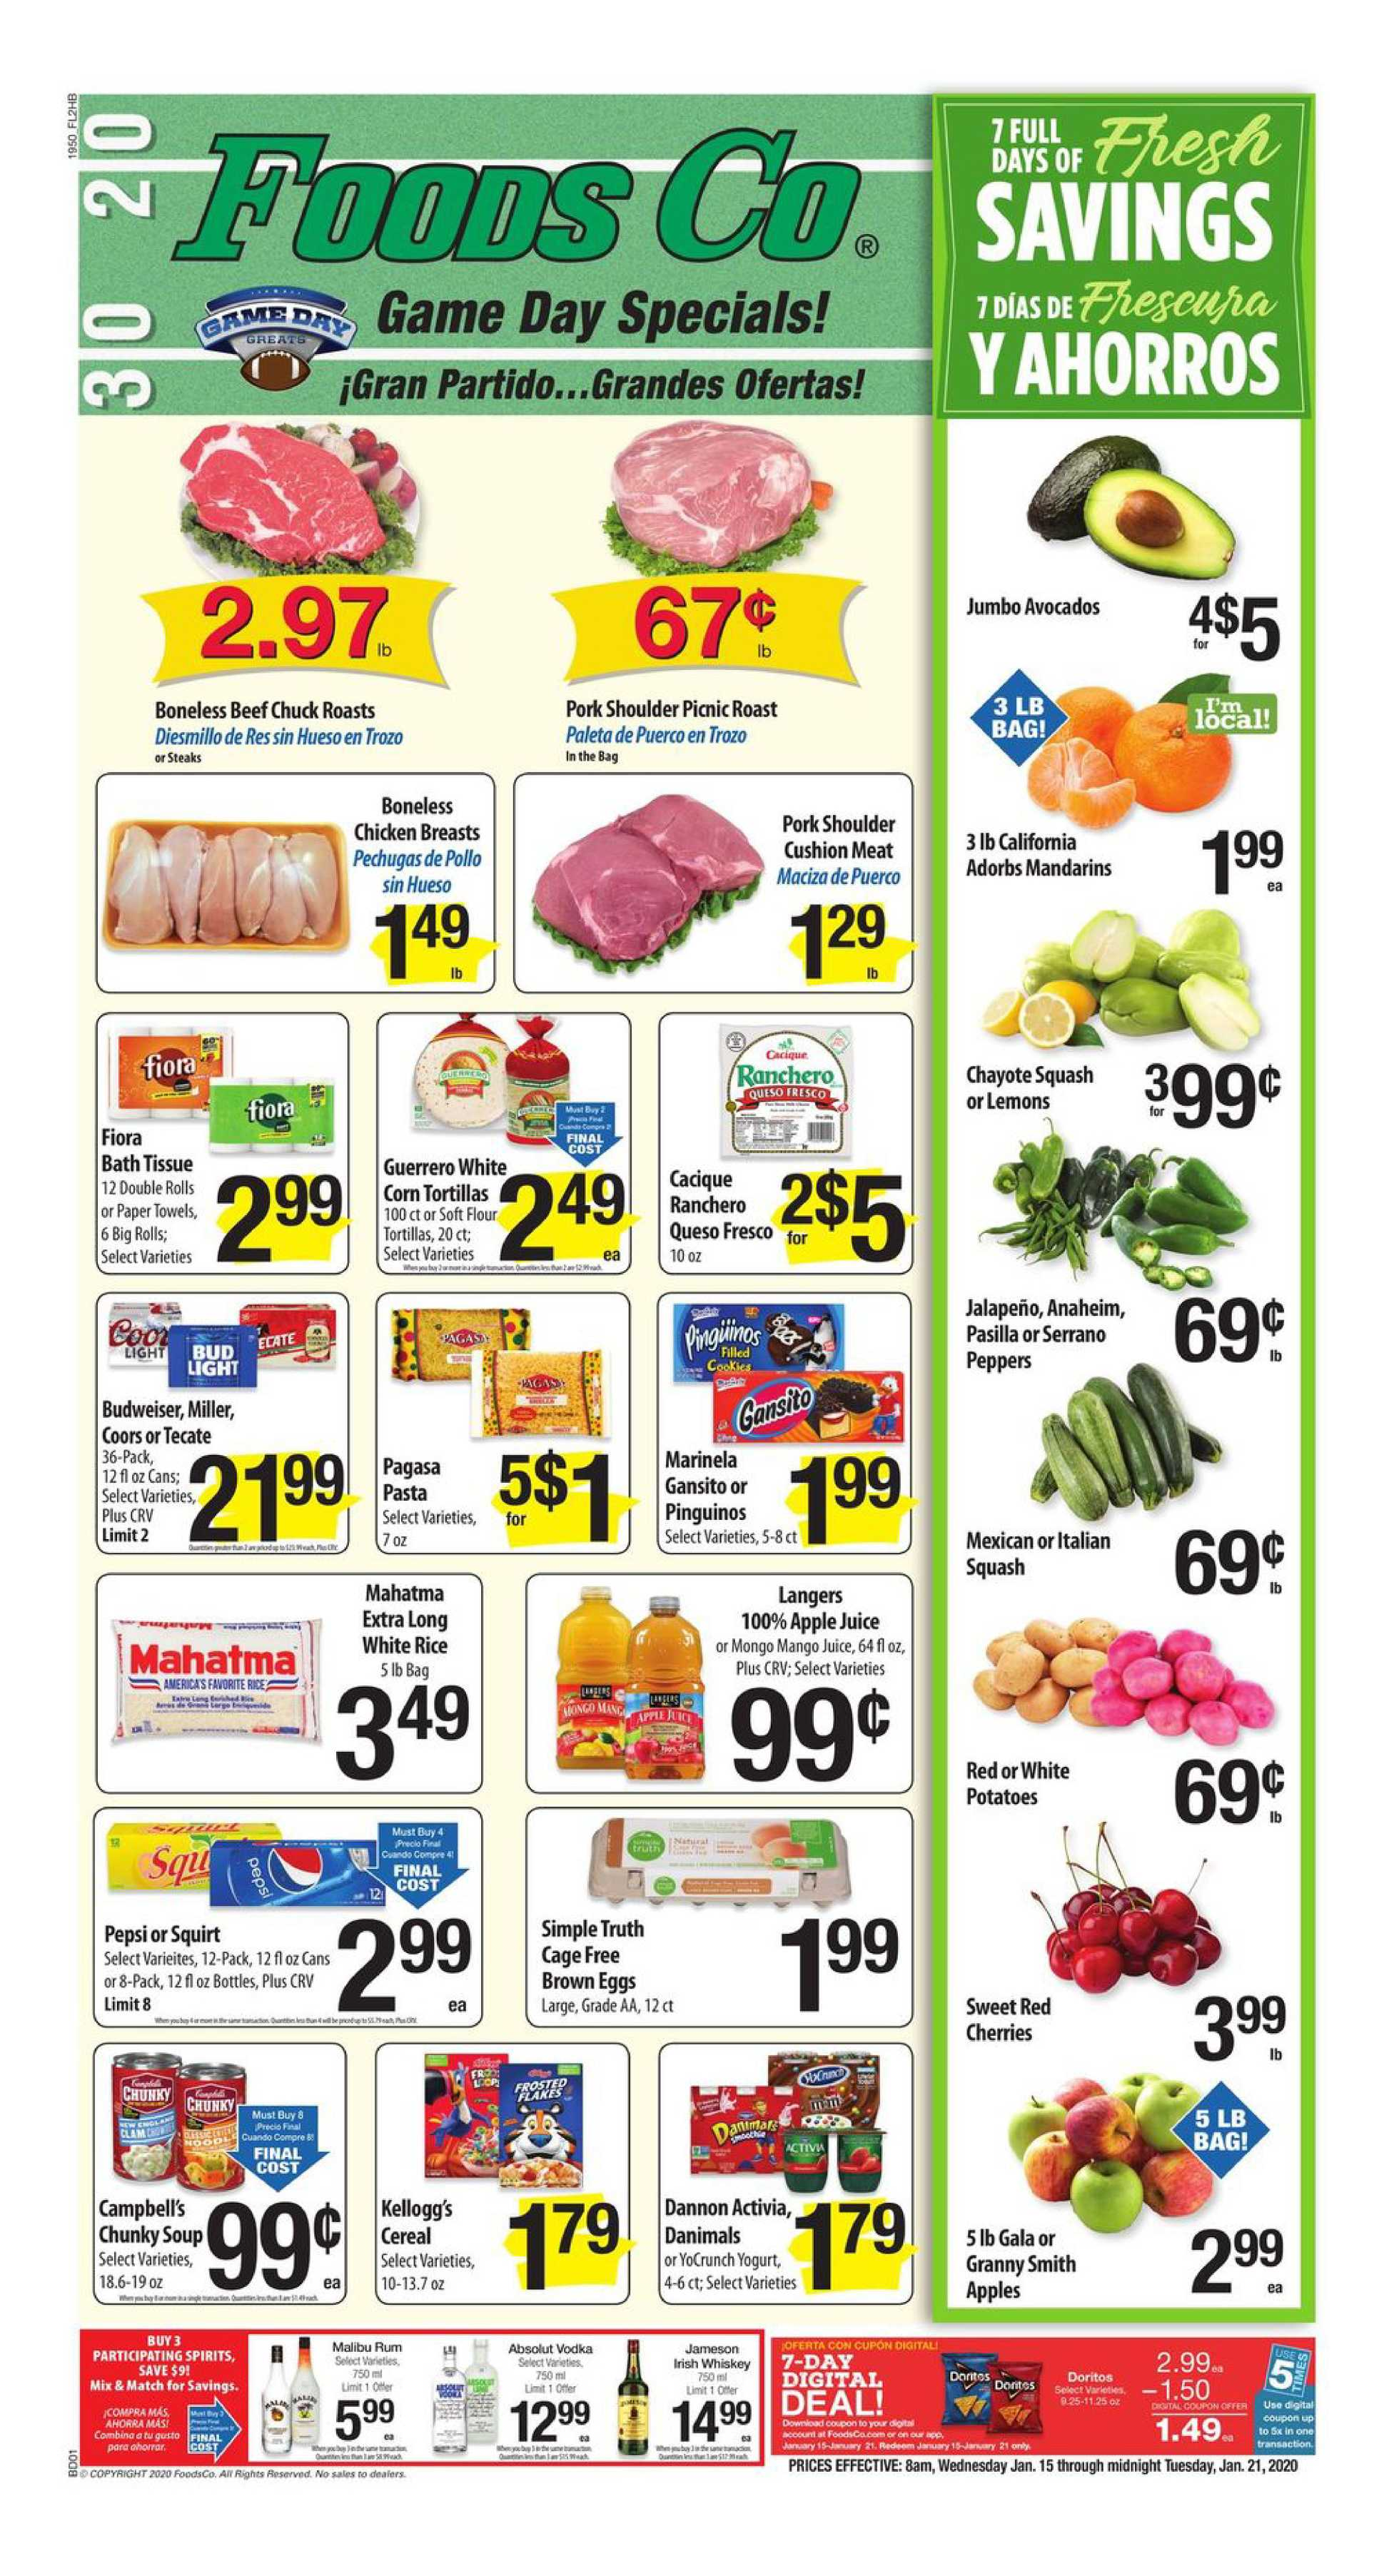 Foods Co. - promo starting from 01/15/20 to 01/21/20 - page 1. The promotion includes steaks, vodka, pechugas, pechugas, vodka, steaks